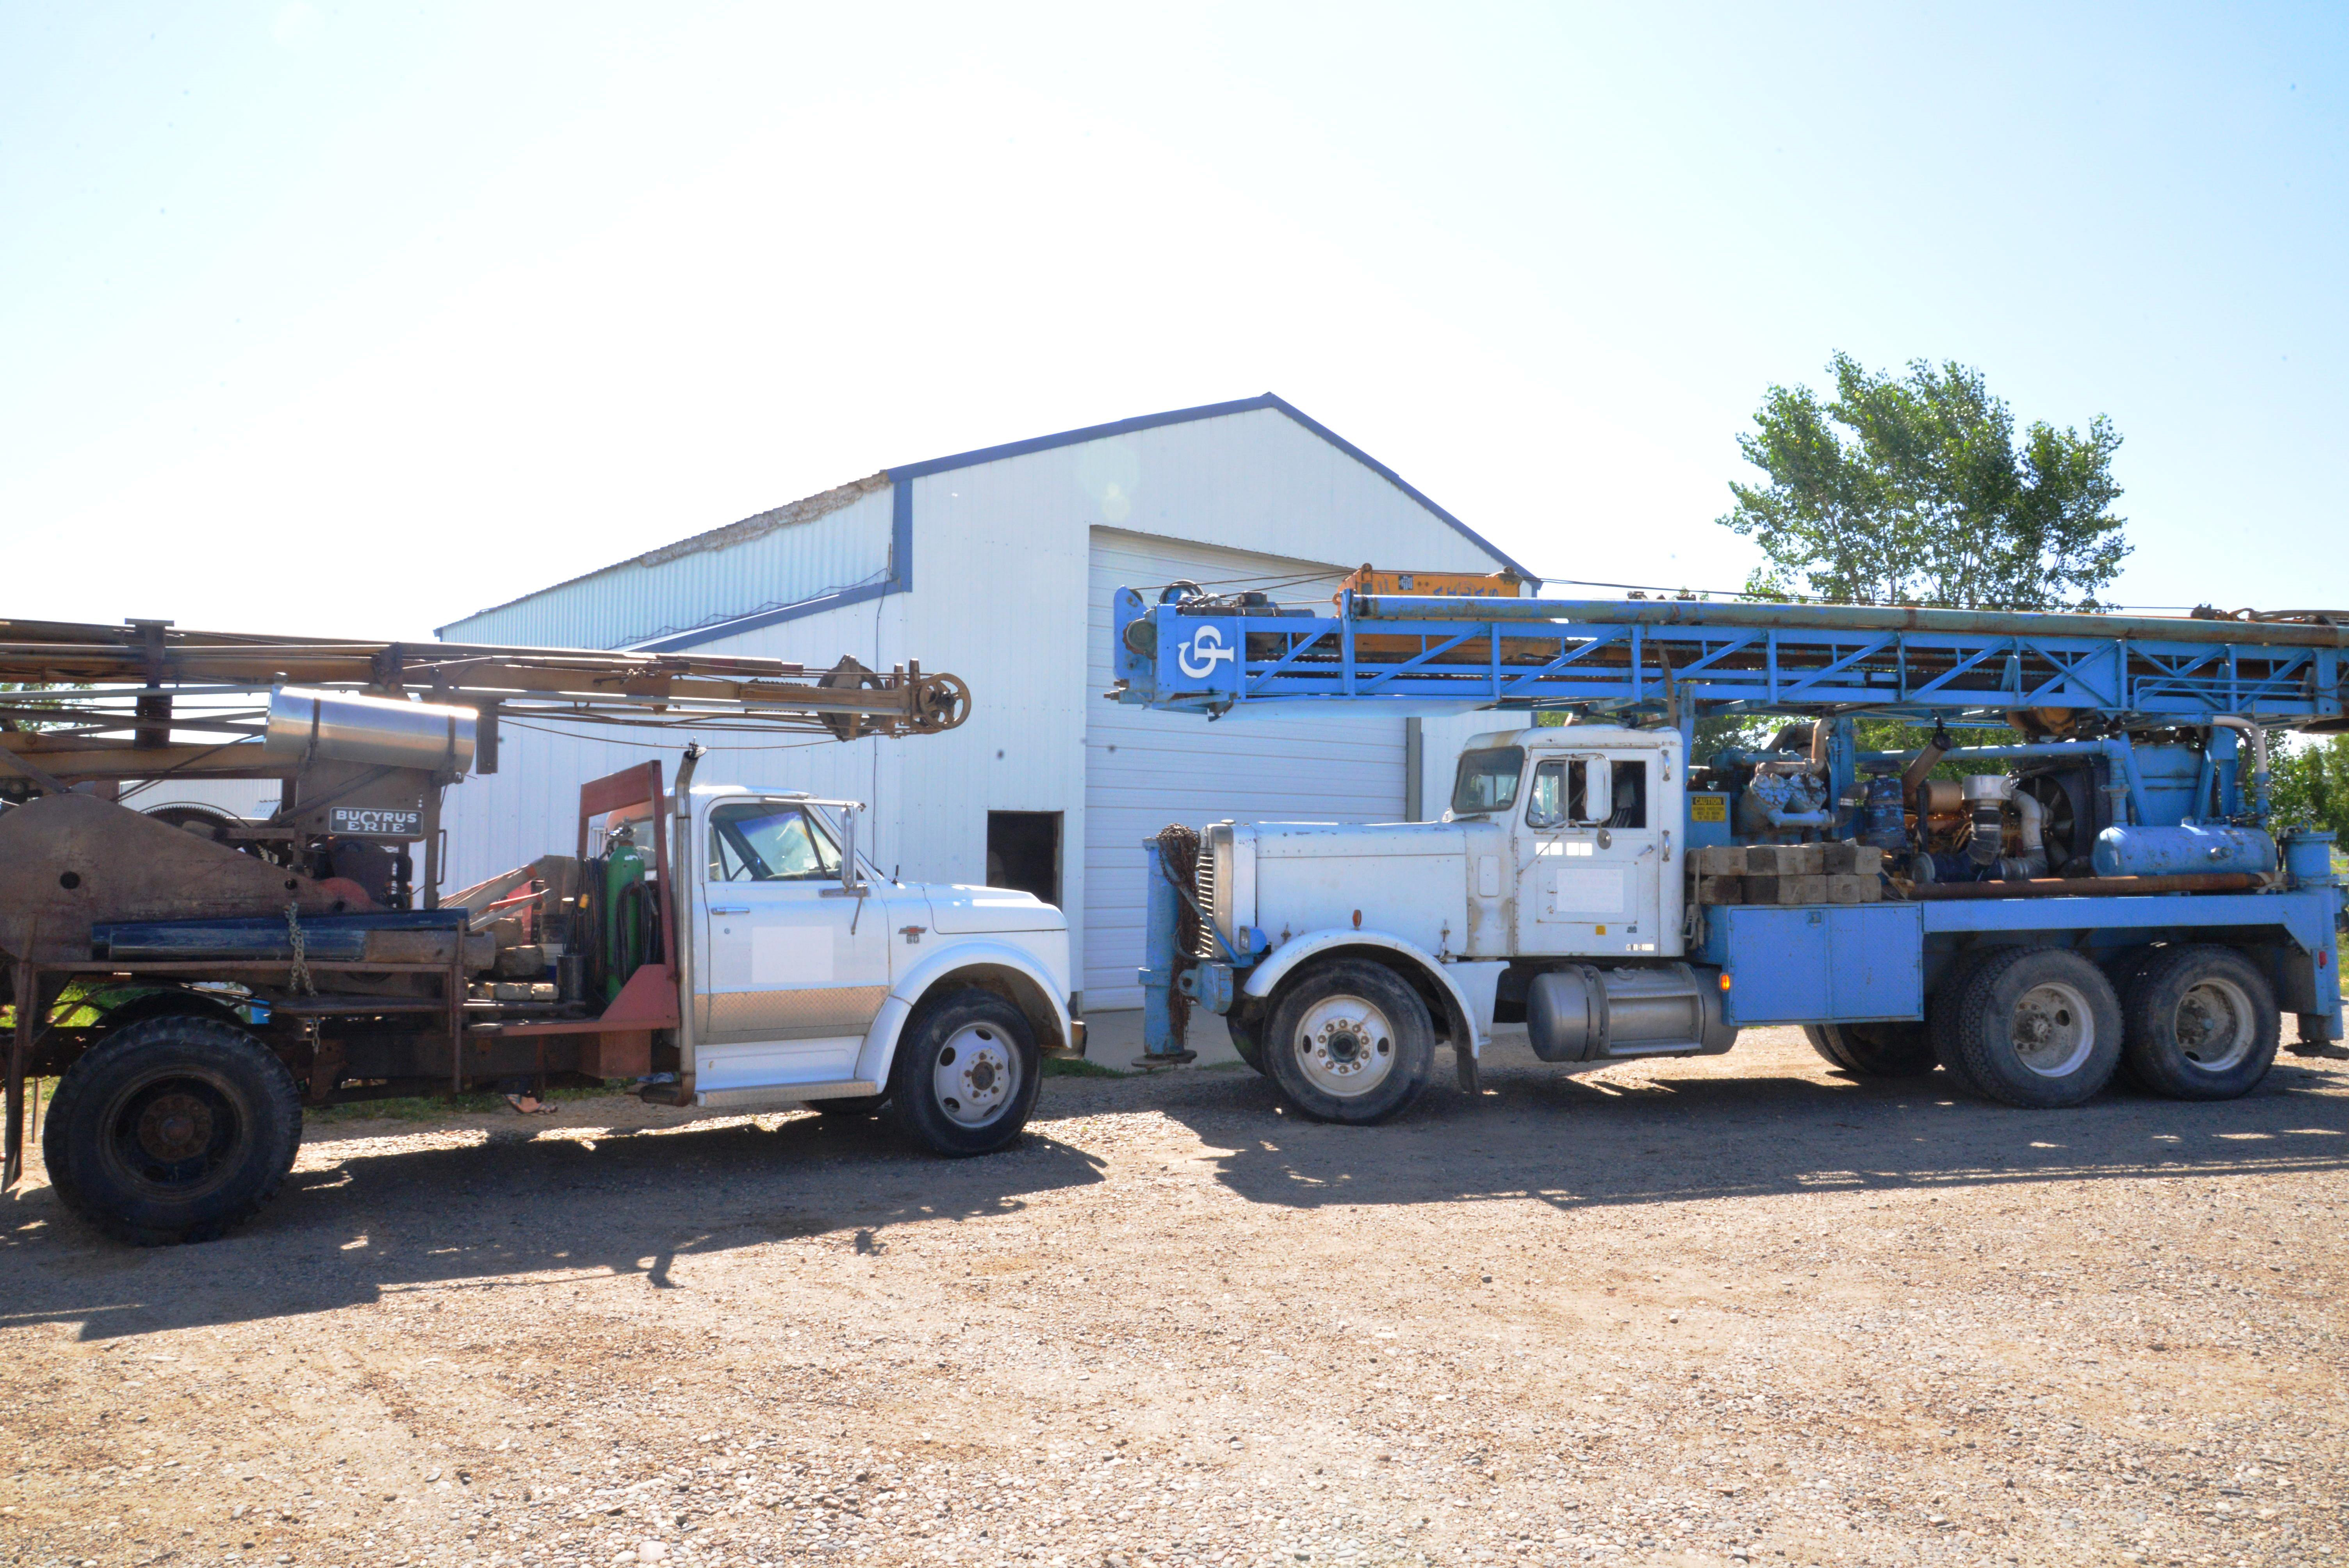 Gary's Drilling Inc, Water, Wells, Drilling, pumps, owned and